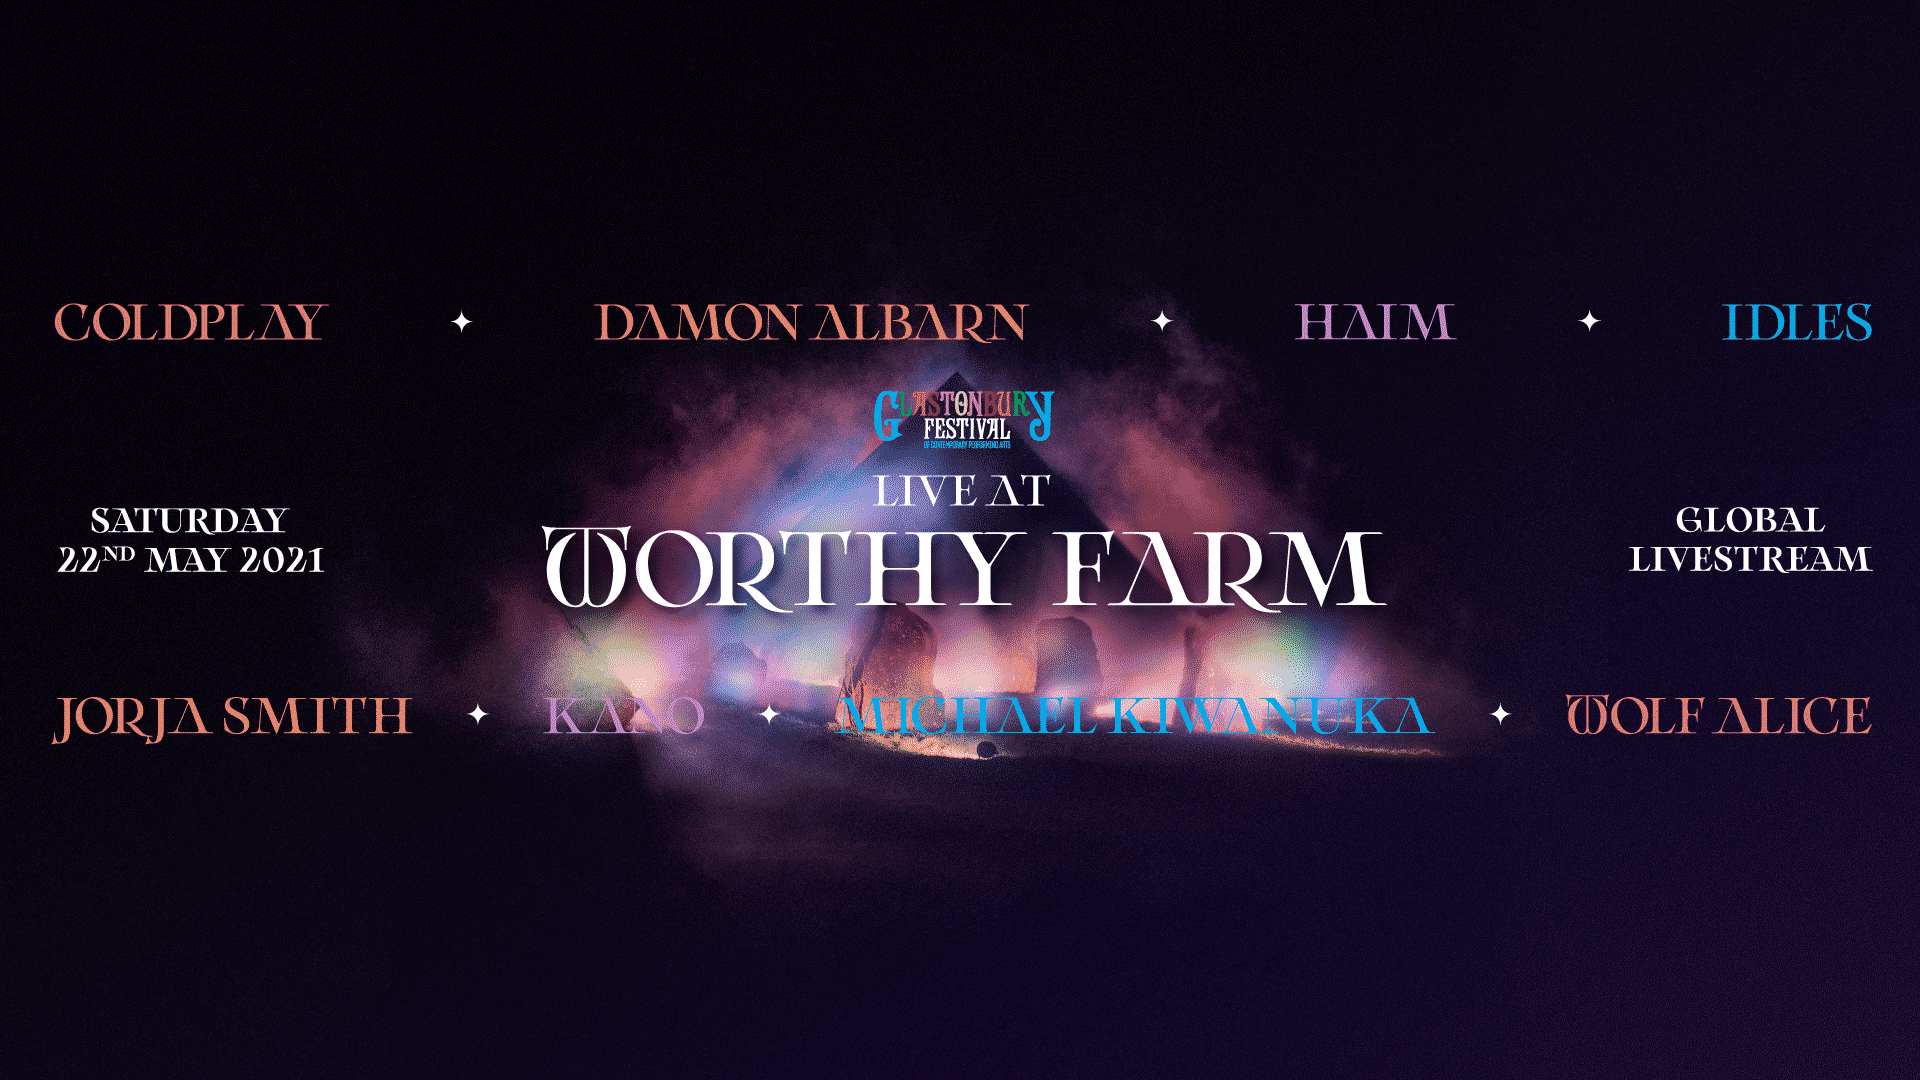 Glastonbury anuncia un evento mundial: ´Live at Worthy Farm´